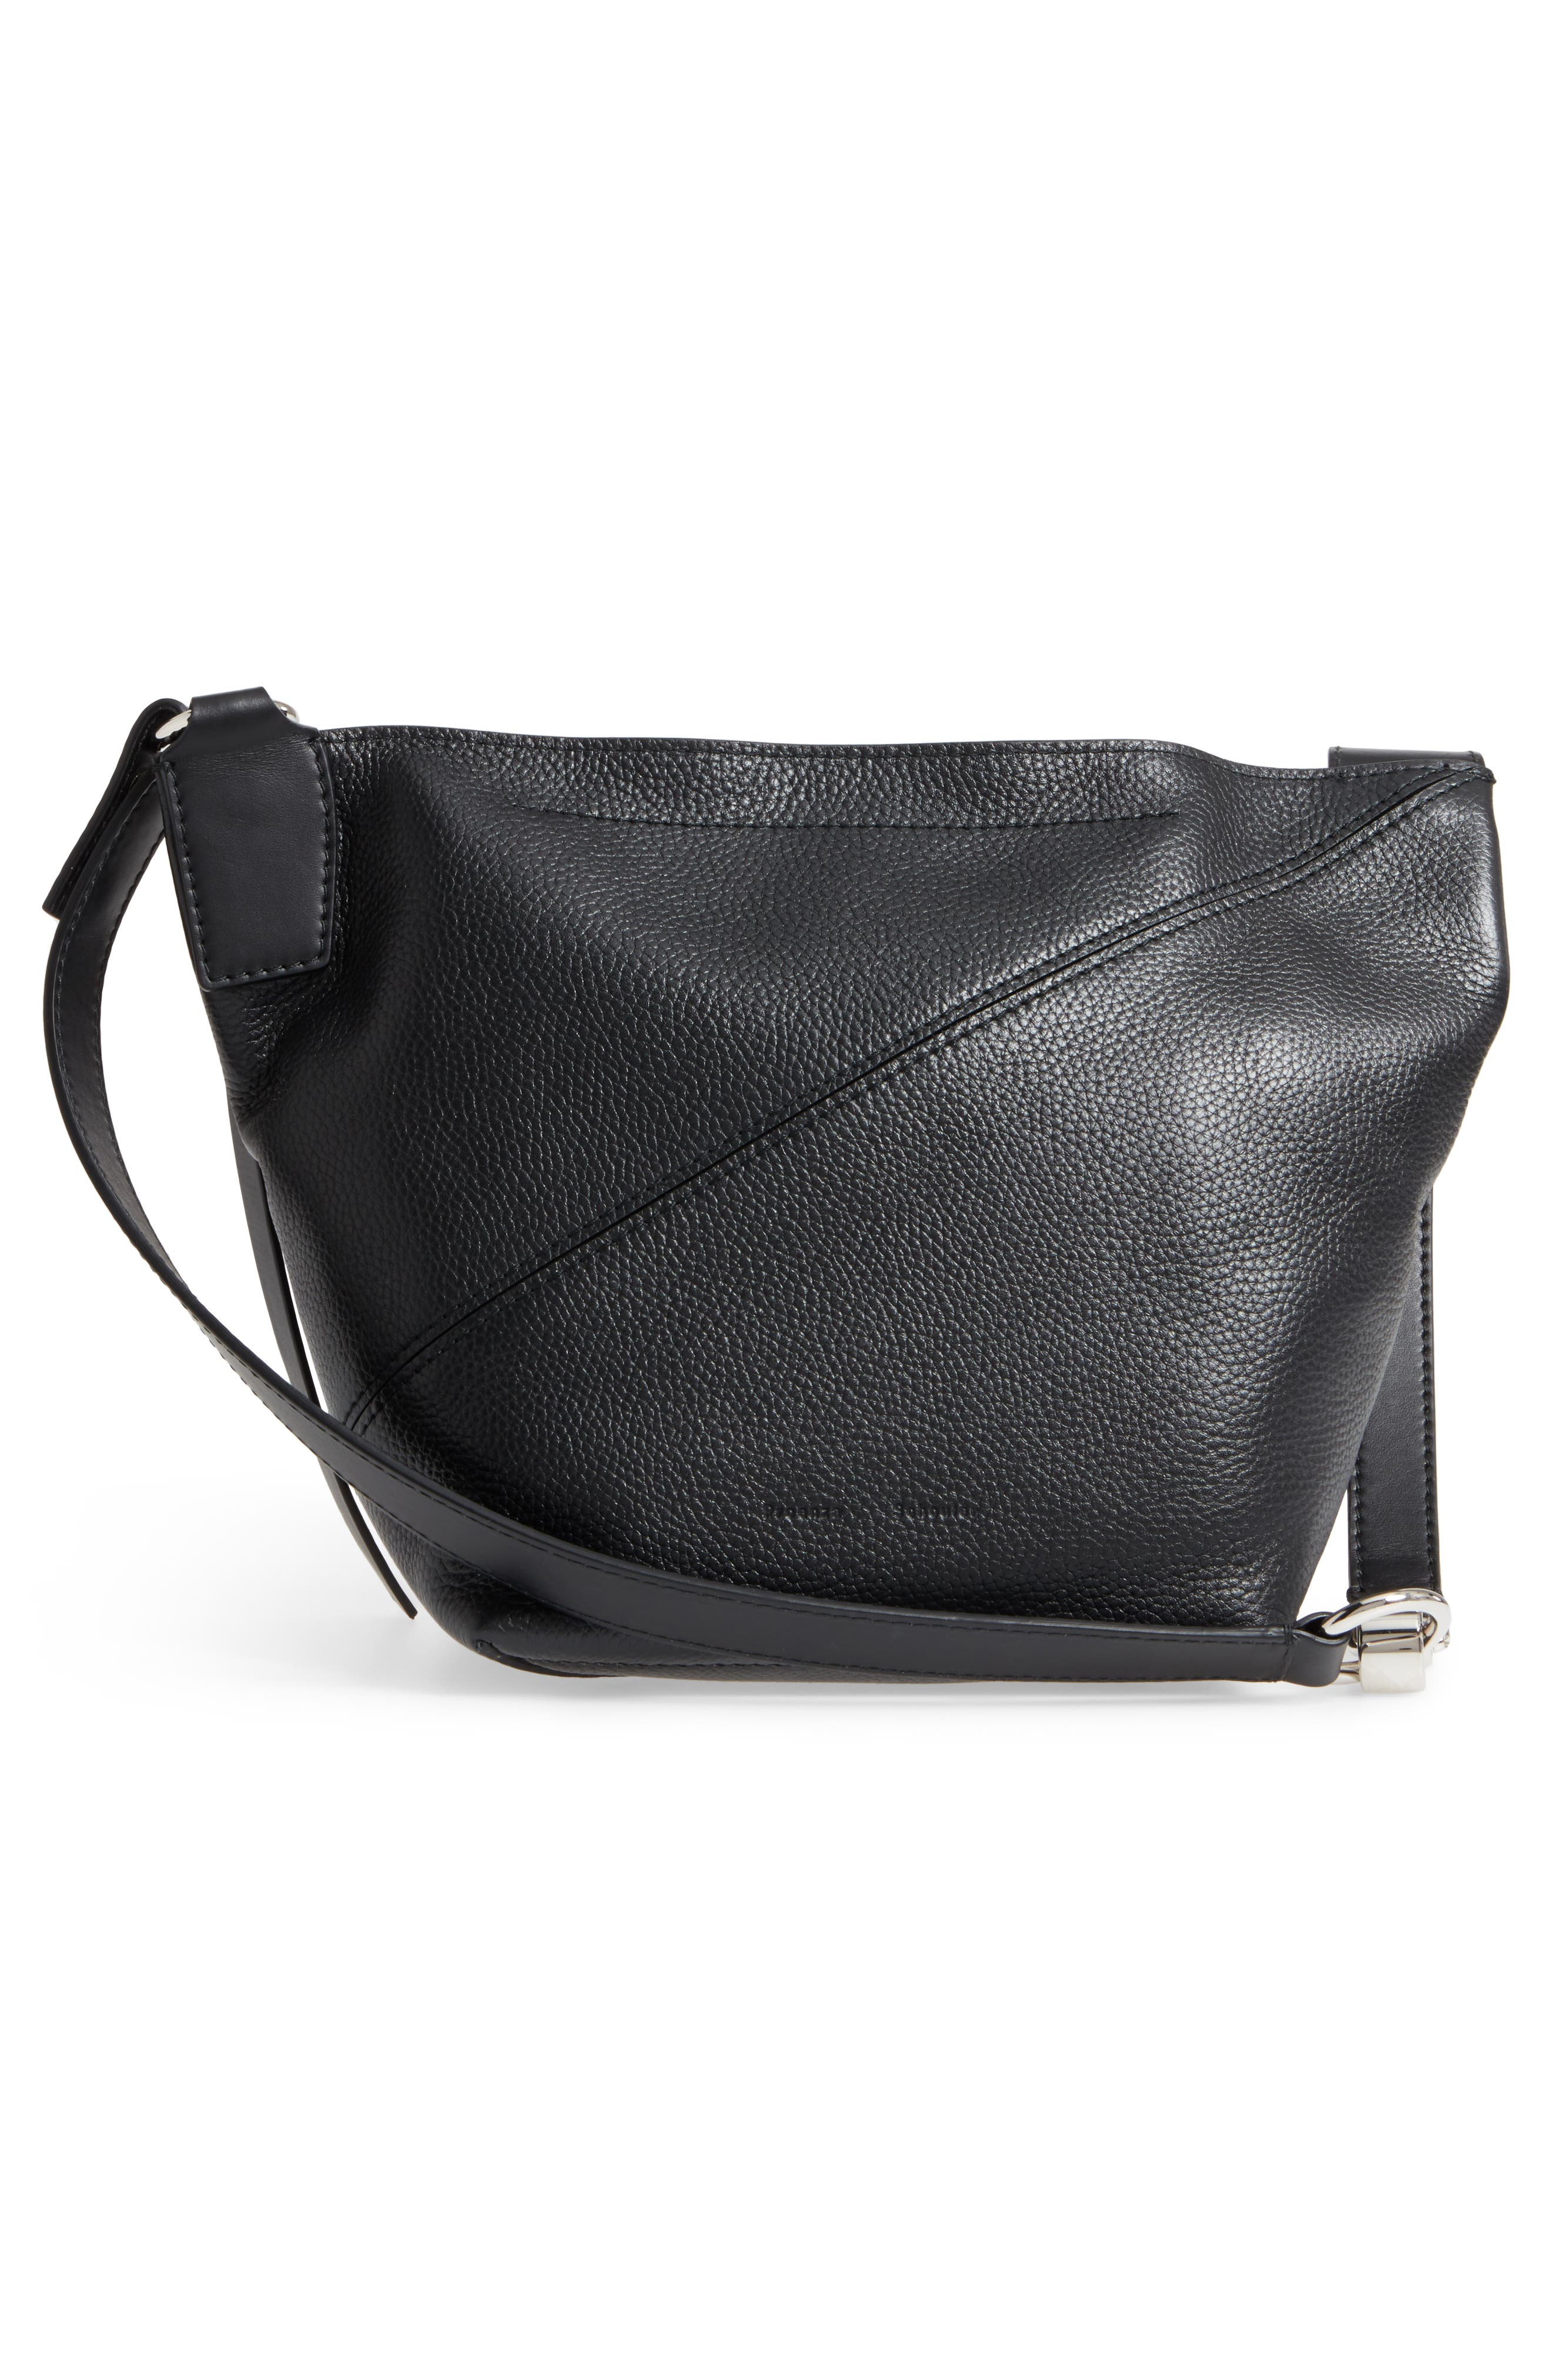 Small Leather Hobo Bag,                             Alternate thumbnail 3, color,                             001